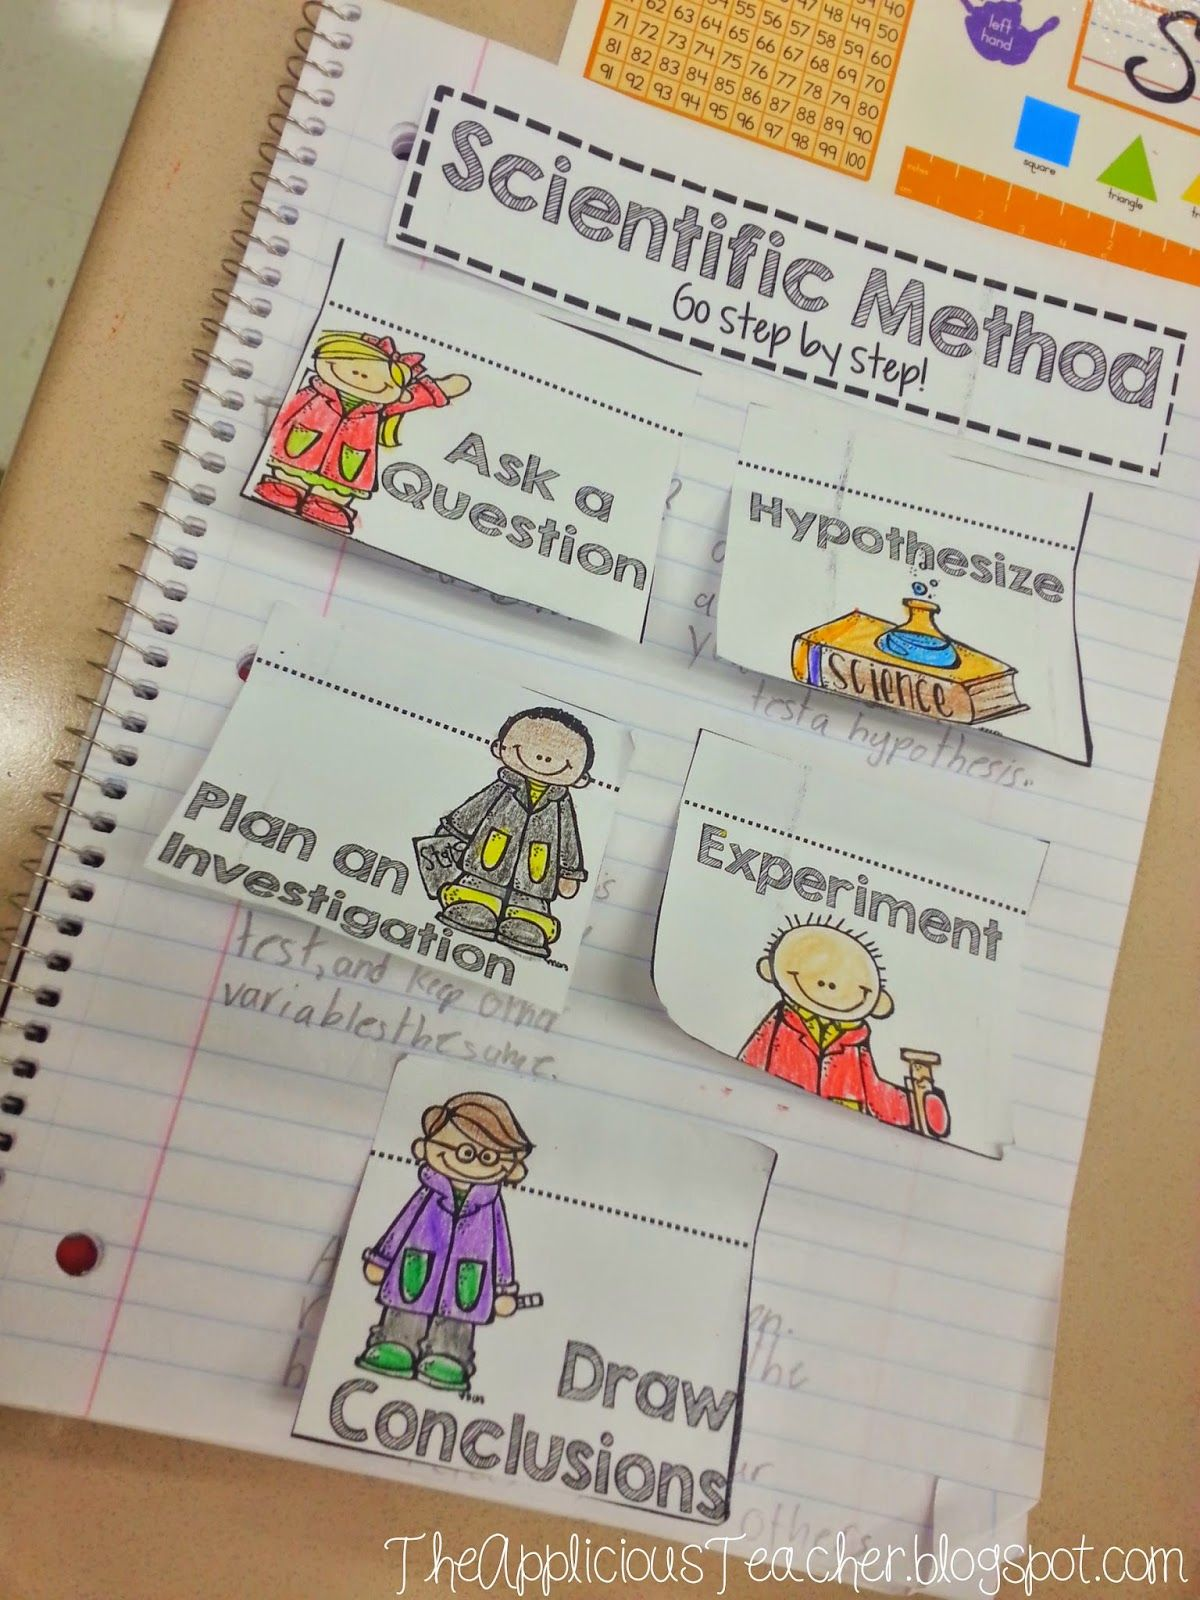 best ideas about scientific method video 17 best ideas about scientific method video scientific method scientific method posters and scientific method in order